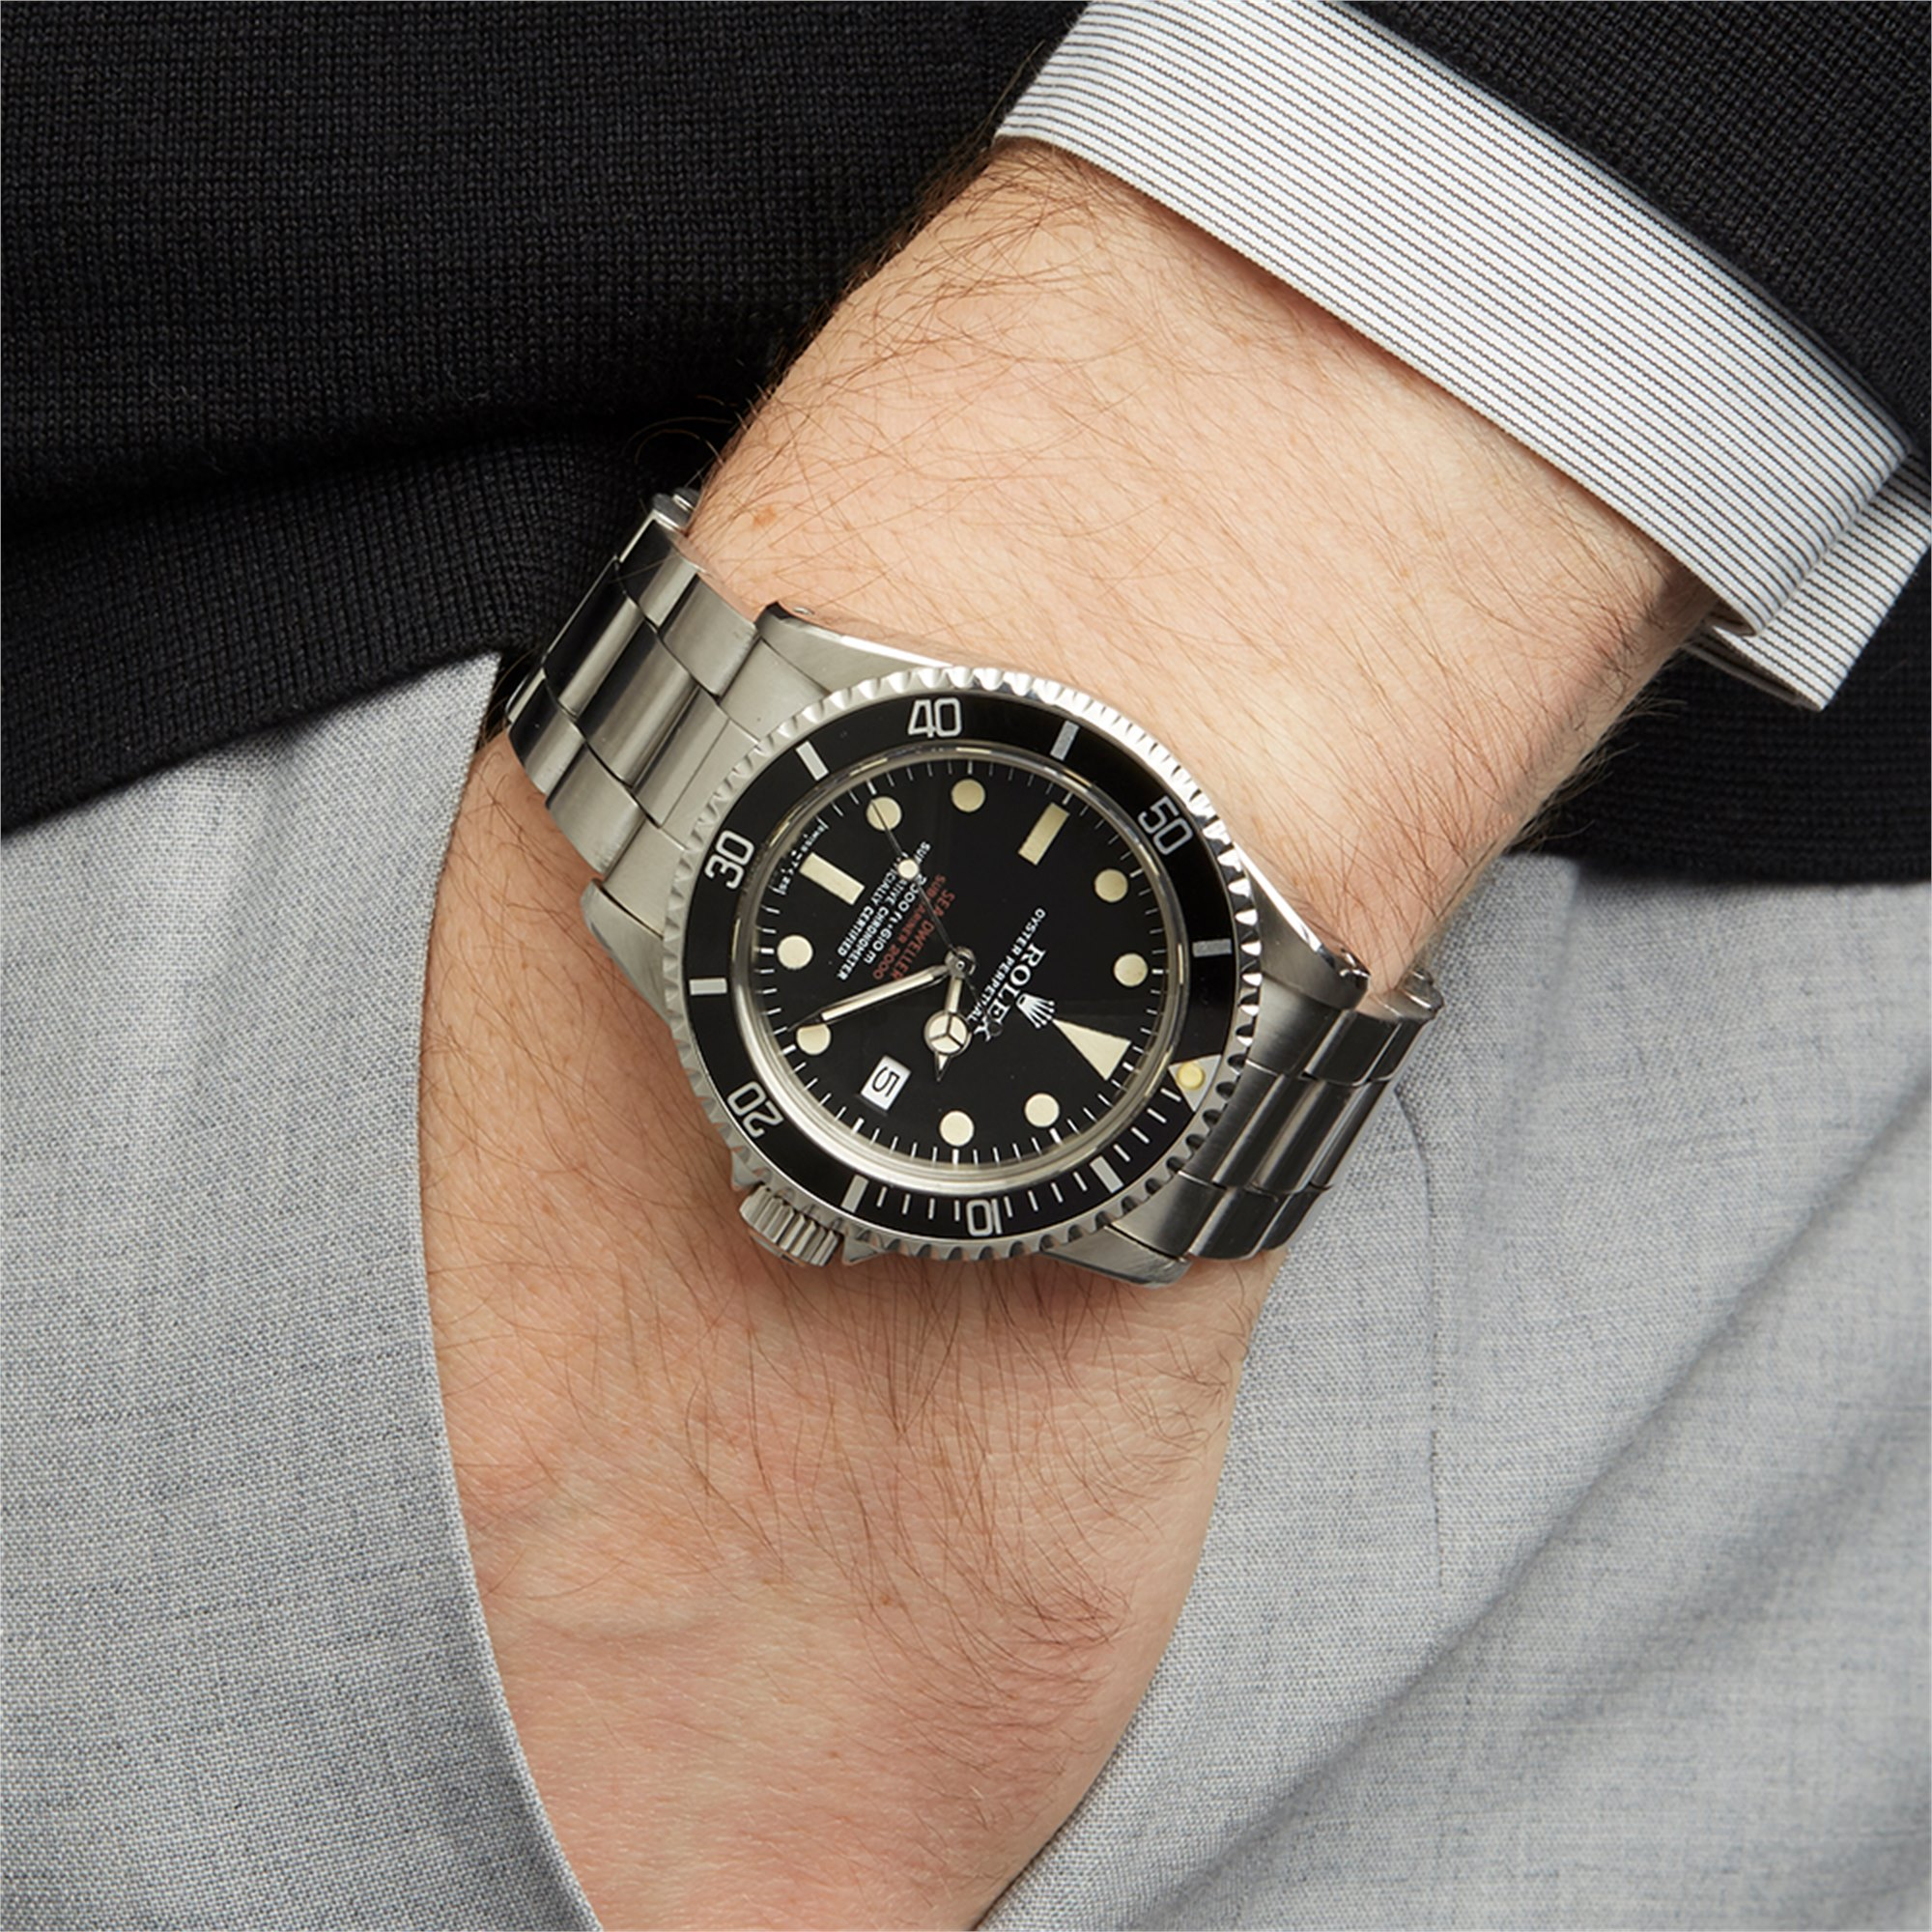 Rolex Sea-Dweller Double Red Drsd Stainless Steel 1665